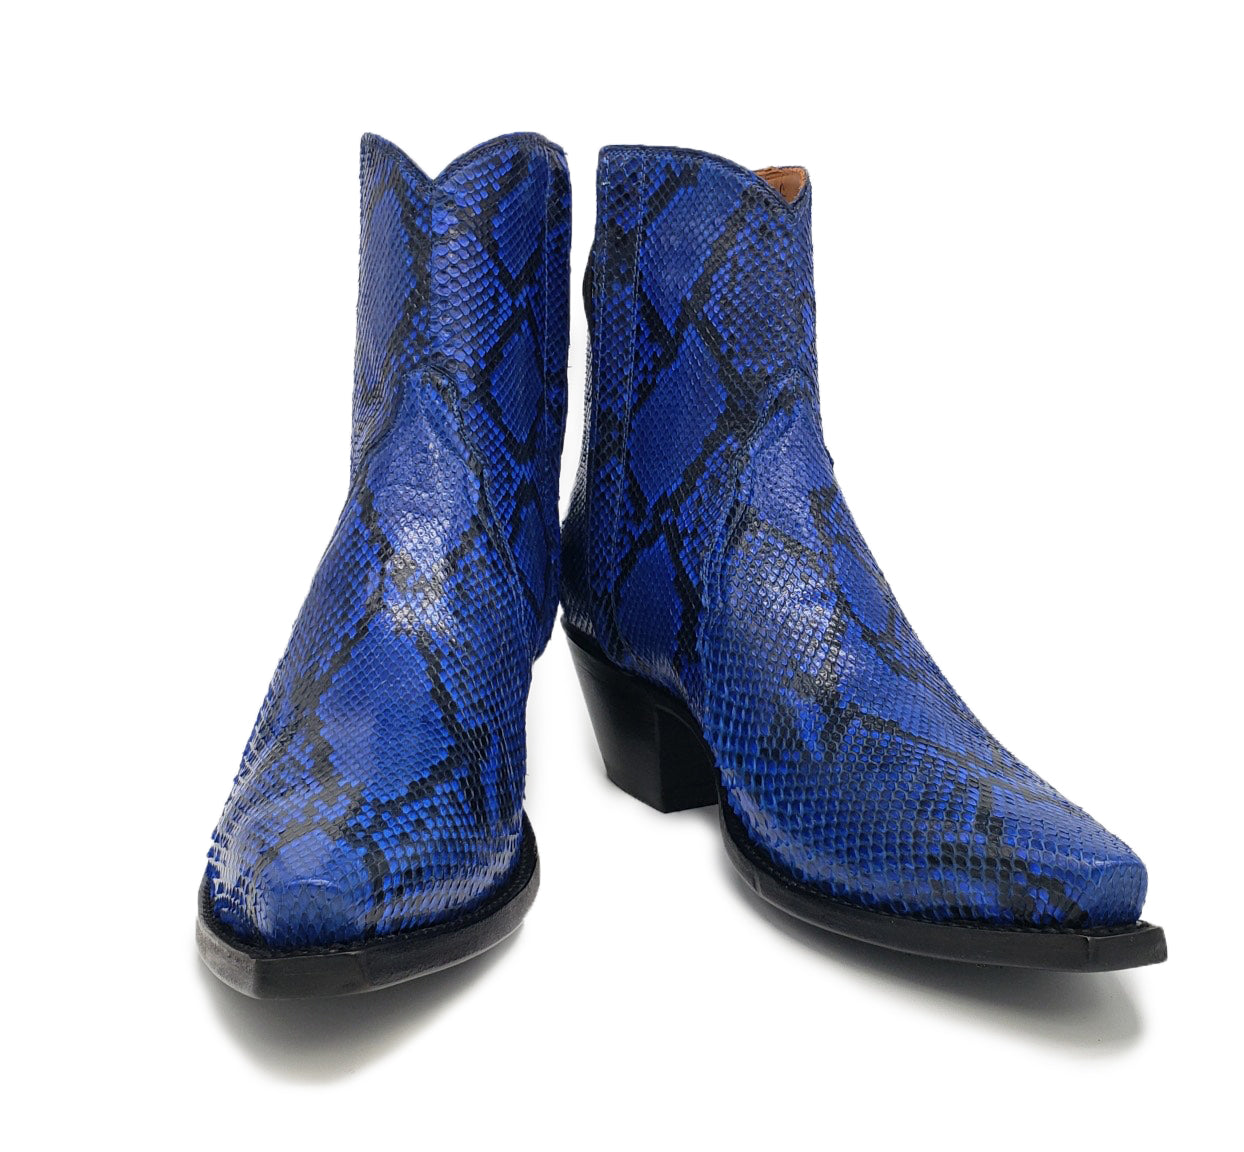 Ready To Wear Blue Full Genuine Burmese Python Ankle Boots 8.5C, X5/8 toe and 1.5